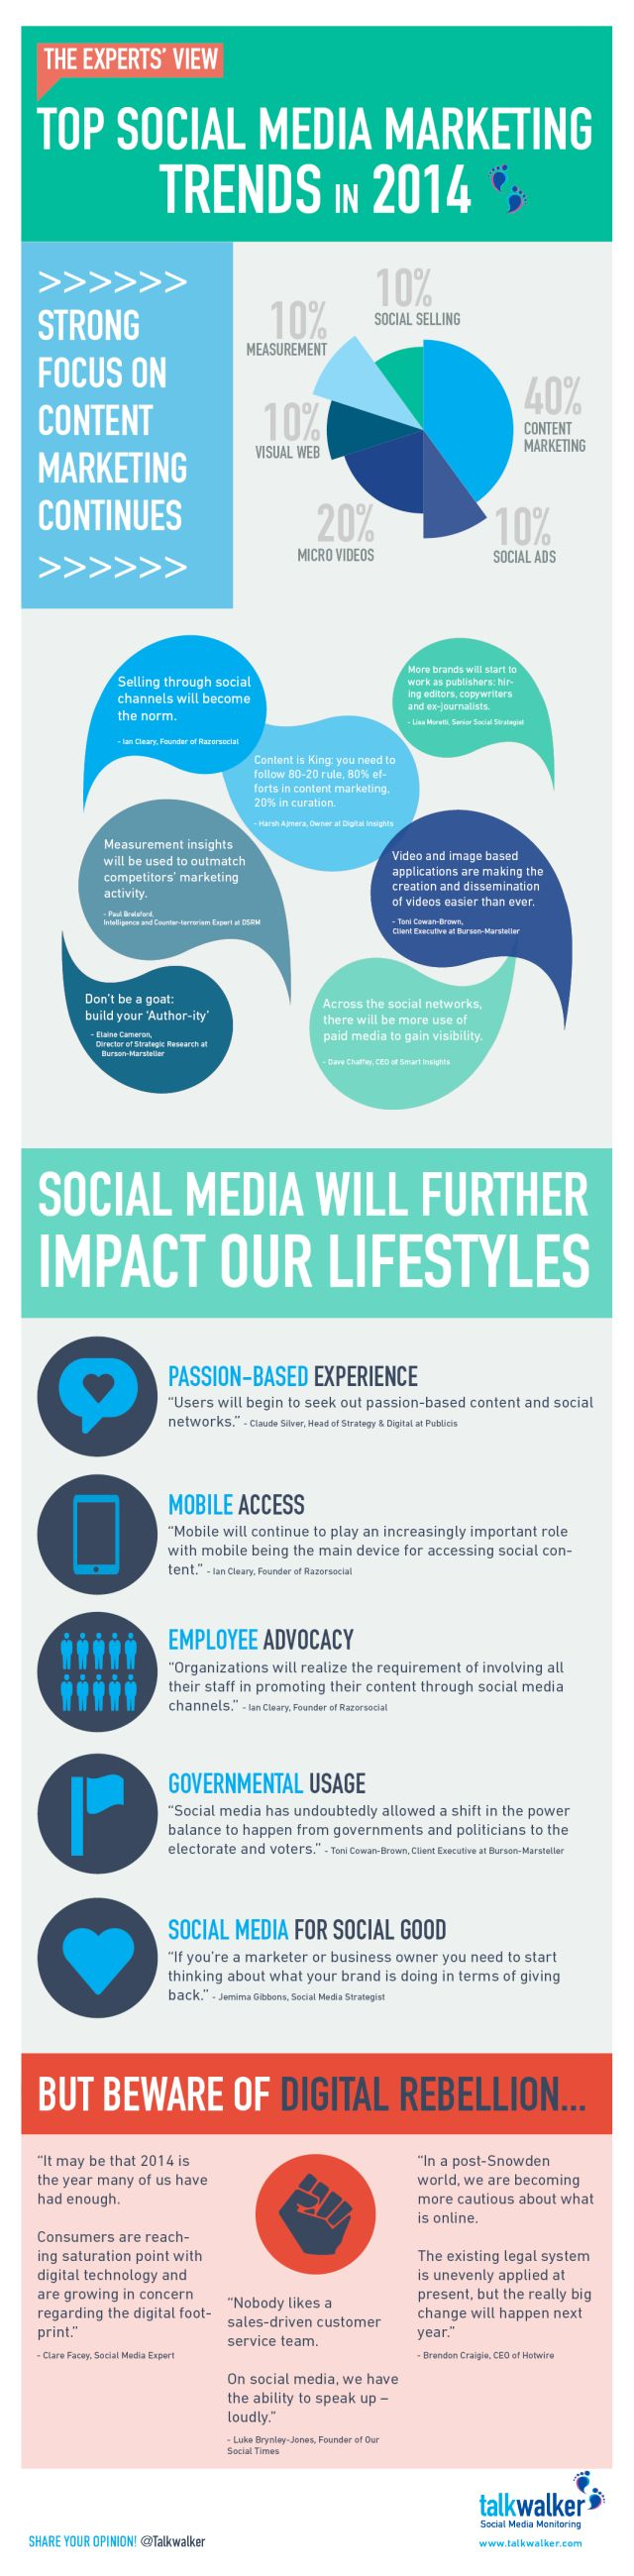 Social Media Marketing Trends in 2014 #infographic